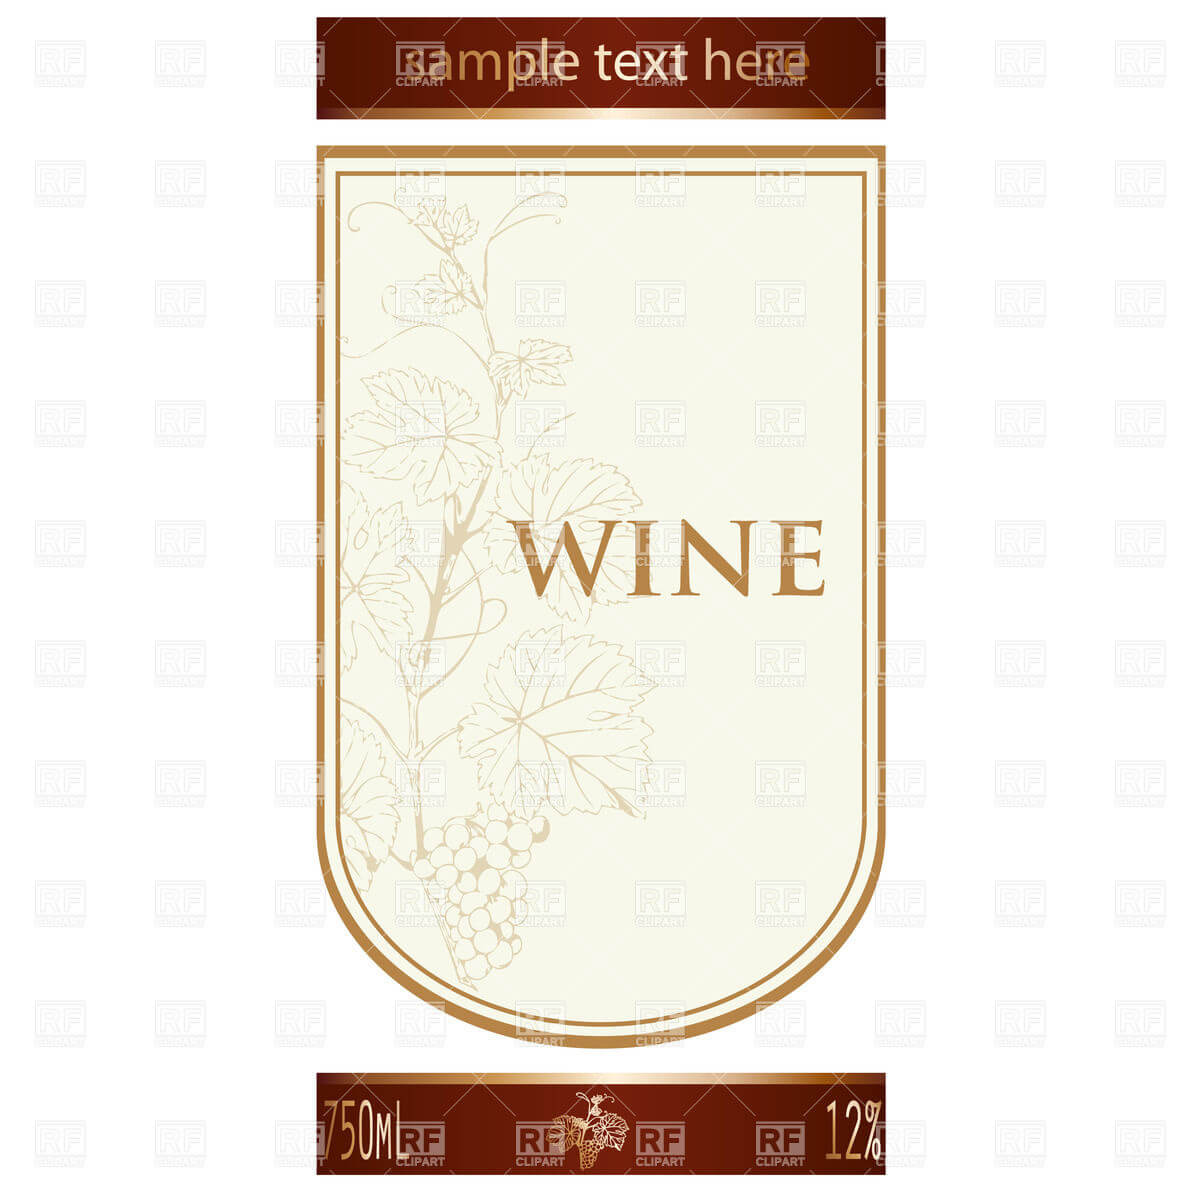 002 Template Ideas Free Wine Label Remarkable Bottle With Blank Wine Label Template